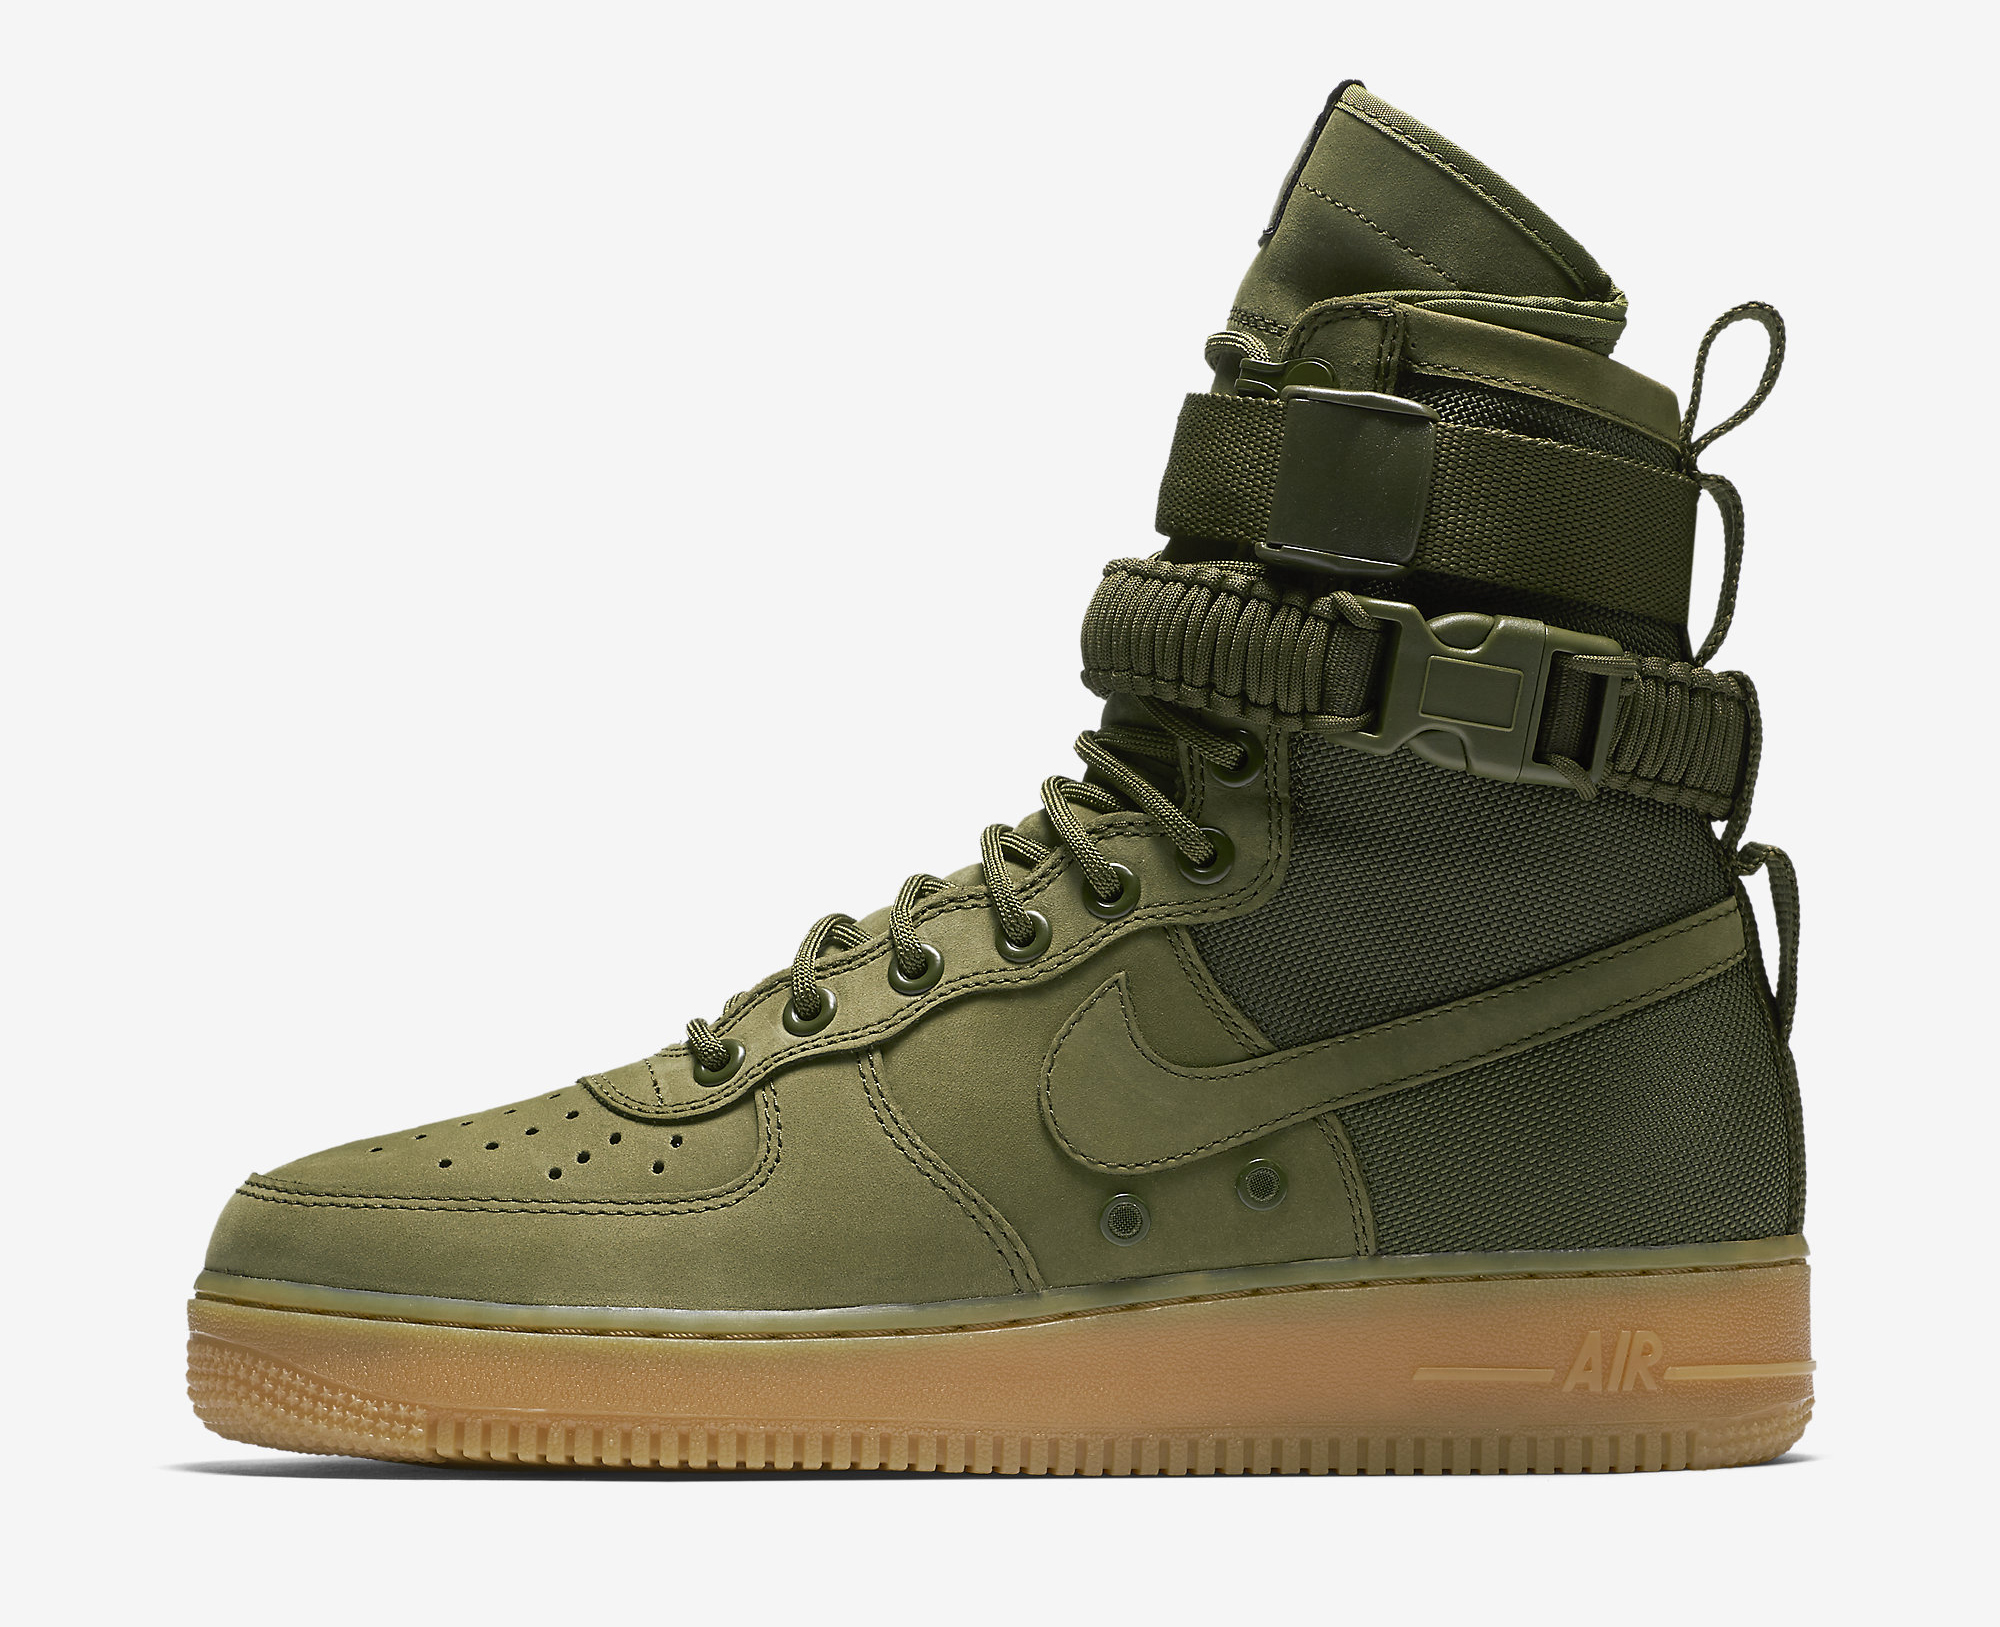 84d72b9b699a Image via Nike Nike SFAF1 Faded Olive Gum Light Brown